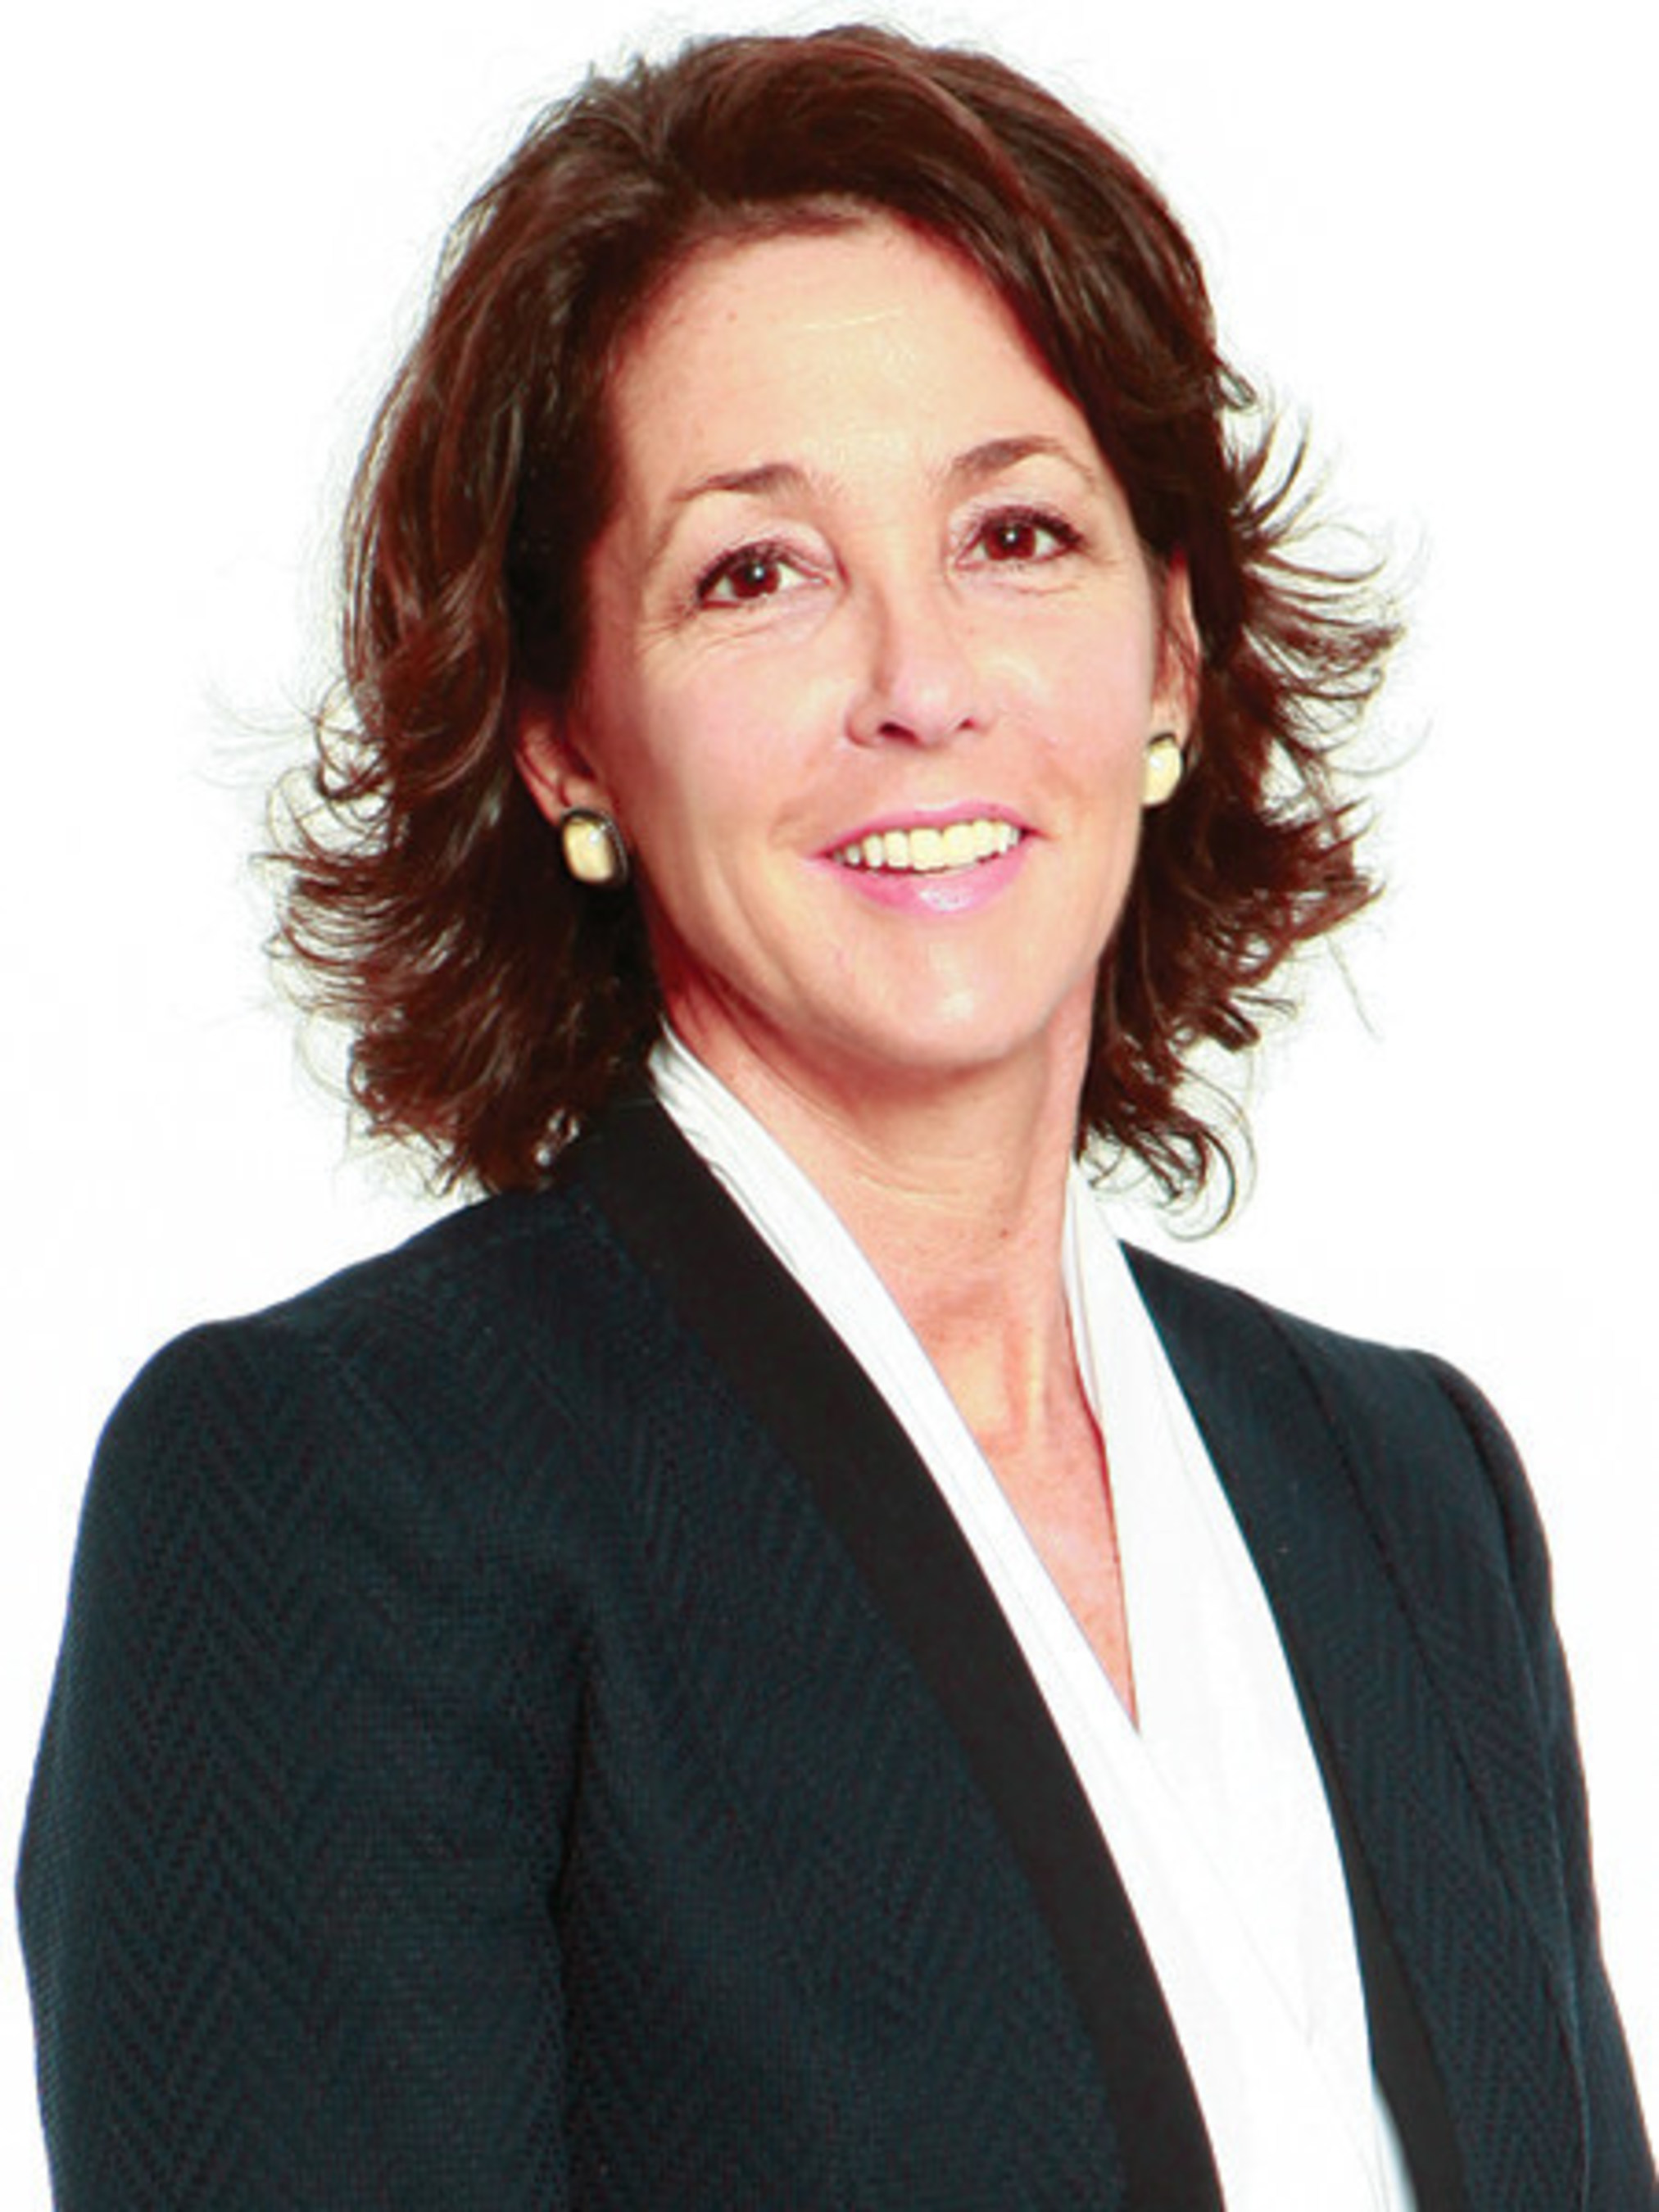 OppenheimerFunds announced that Sharon French joined the firm as Head of Beta Solutions.